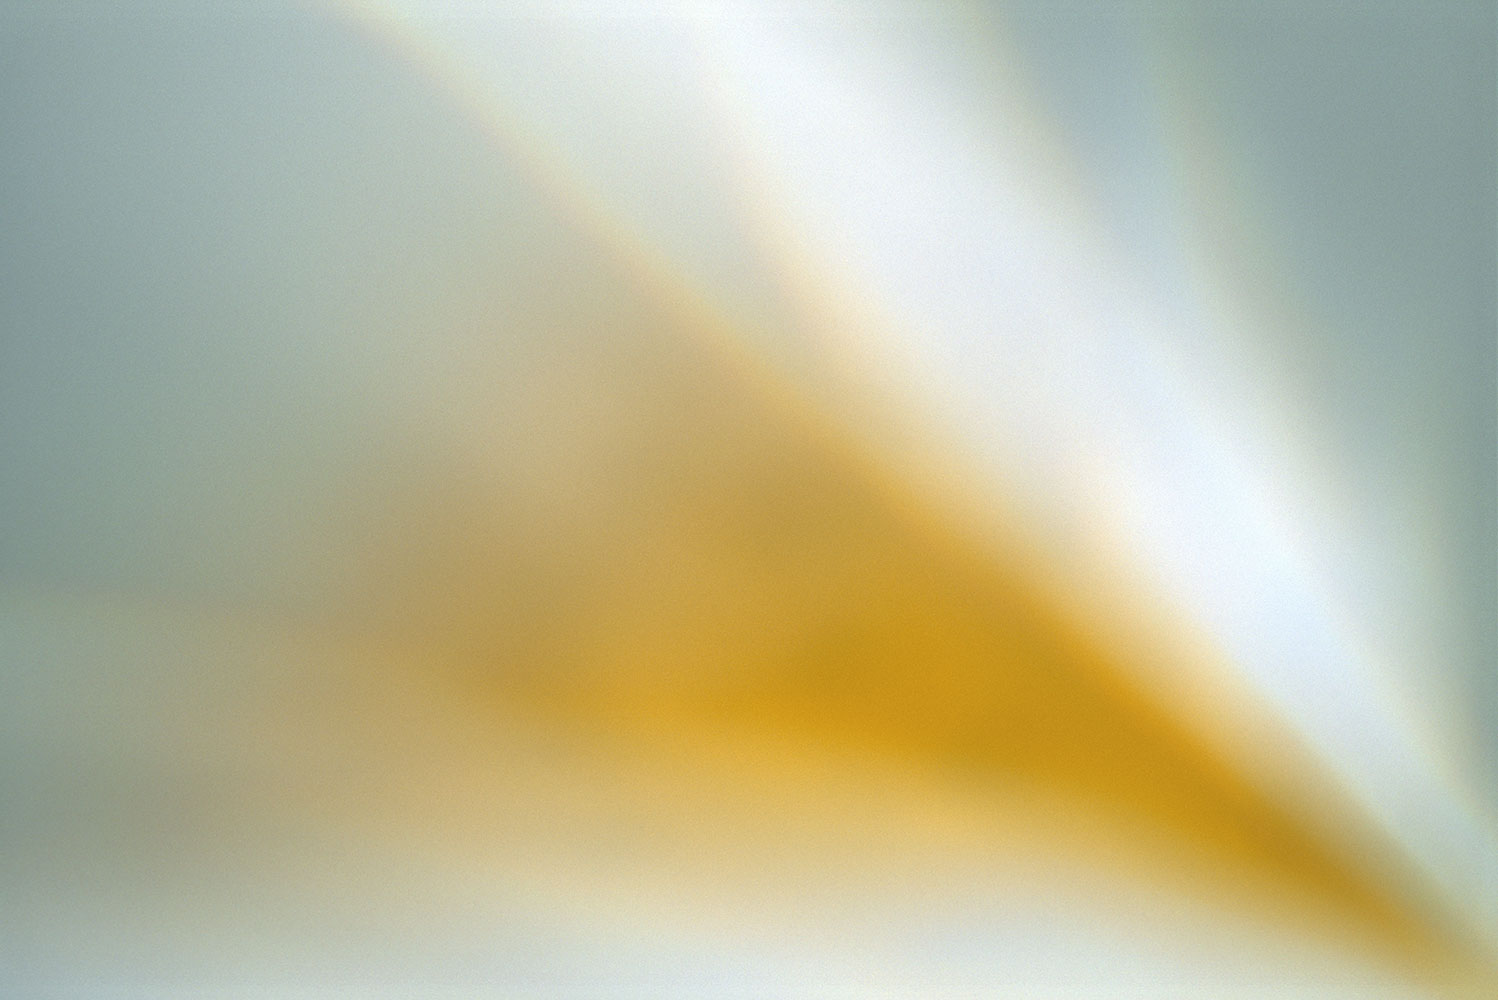 light-breaks:     phenomena    ephemeral   illumination   desert    wildflower   mustard   teal     abstract